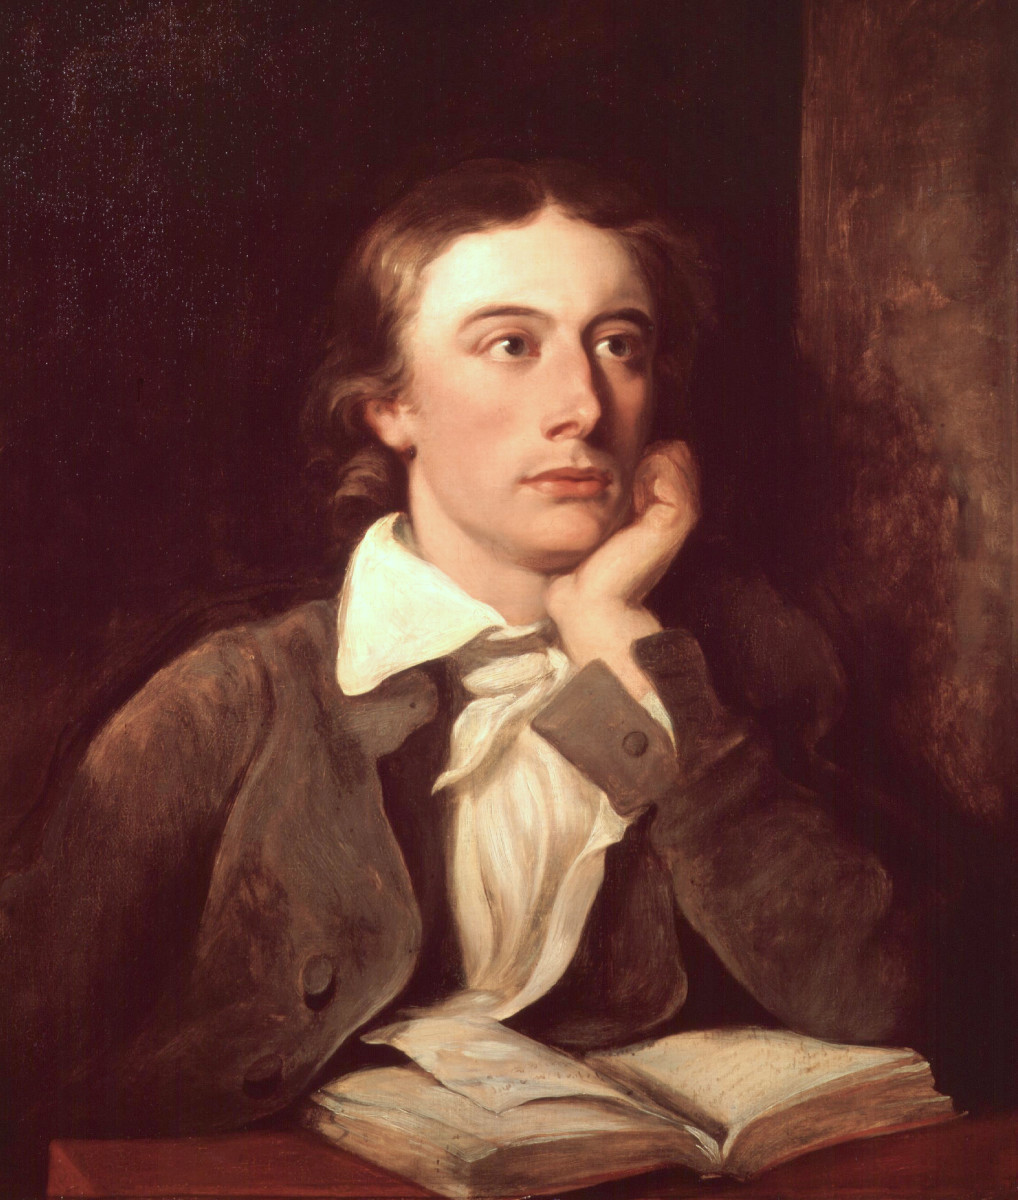 John Keats: Beauty and Truth In a Life of Art